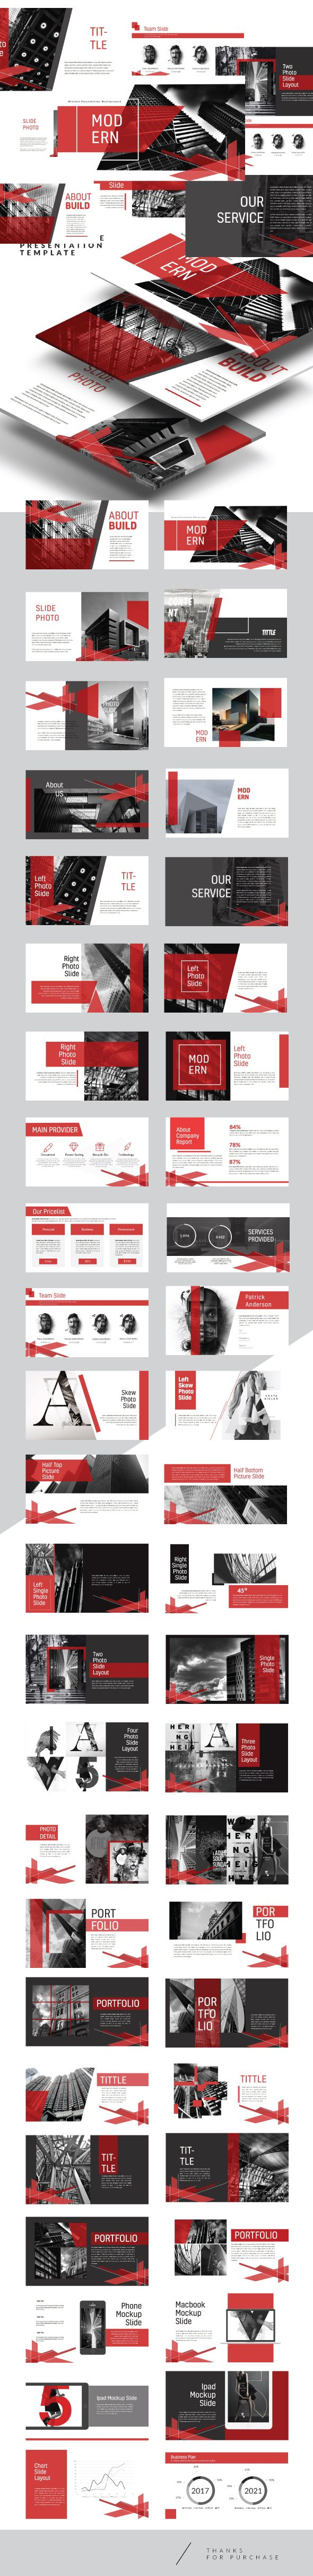 Arch - Creative Multipurpose Keynote Template